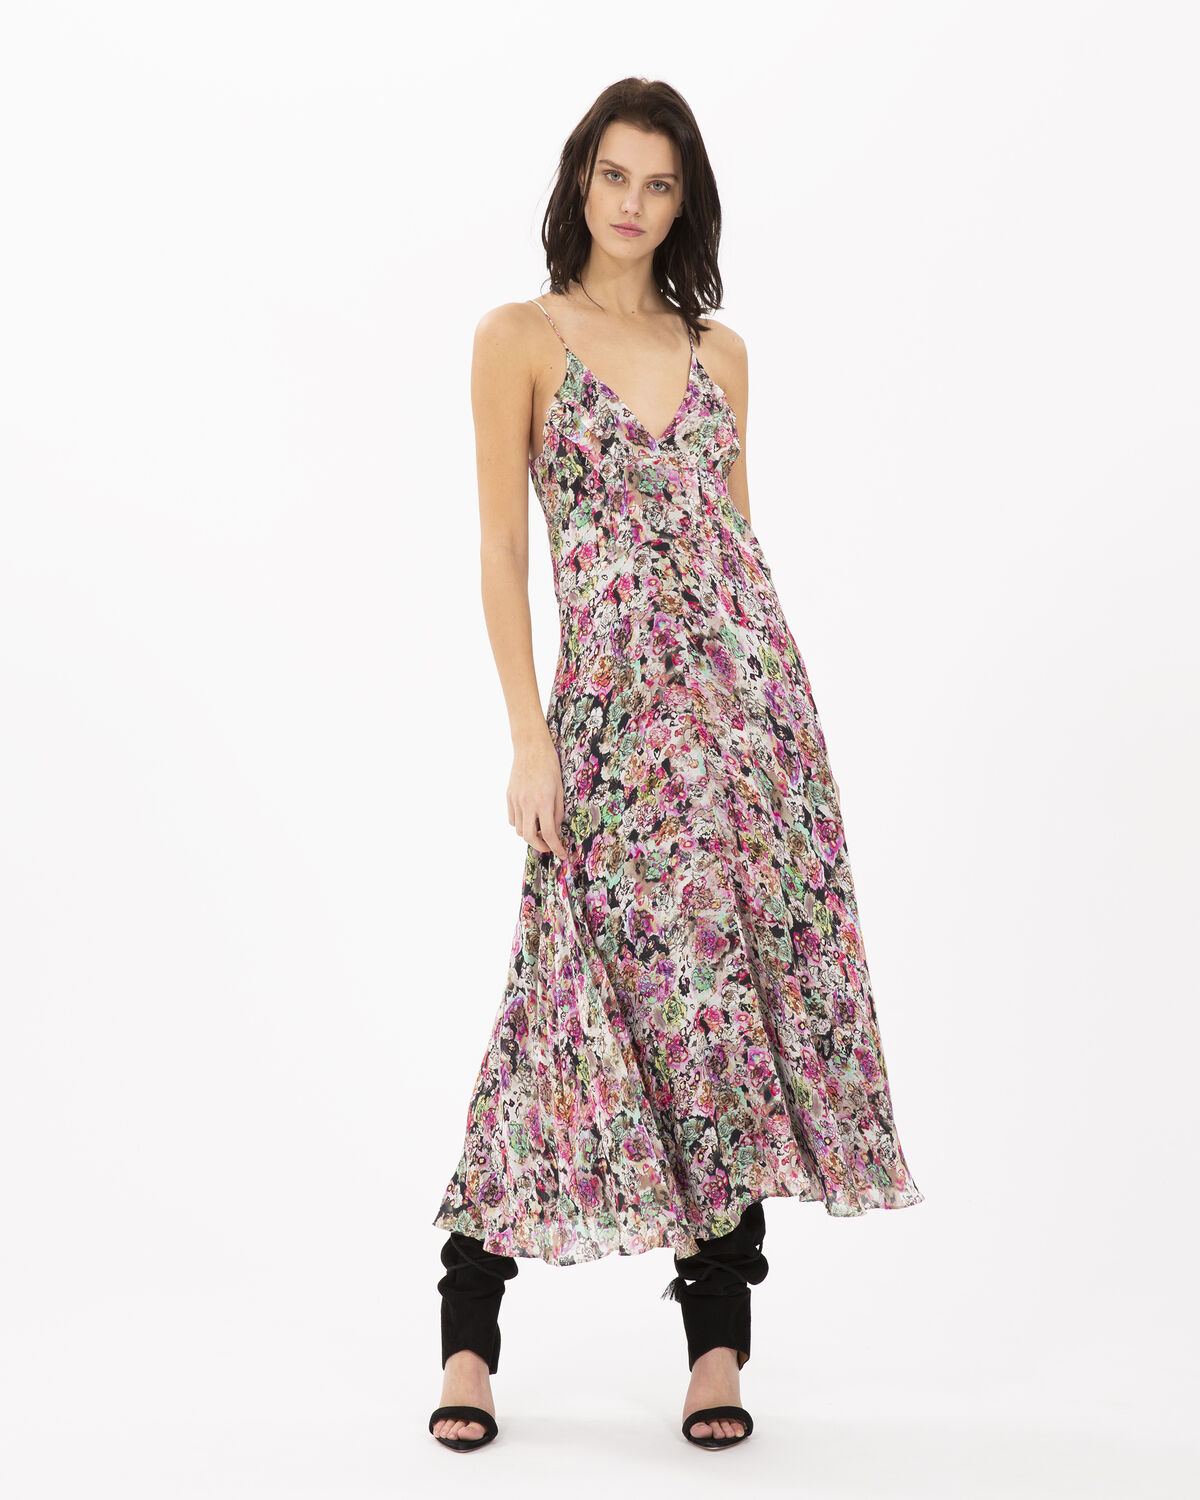 Photo of IRO Paris Severn Dress Pink - Fluid And Airy, This Dress Is Distinguished By Its Floral Print And Thin Straps. Dare To Wear It With A Pair Of Boots For A Bohemian Rock Look. Dresses